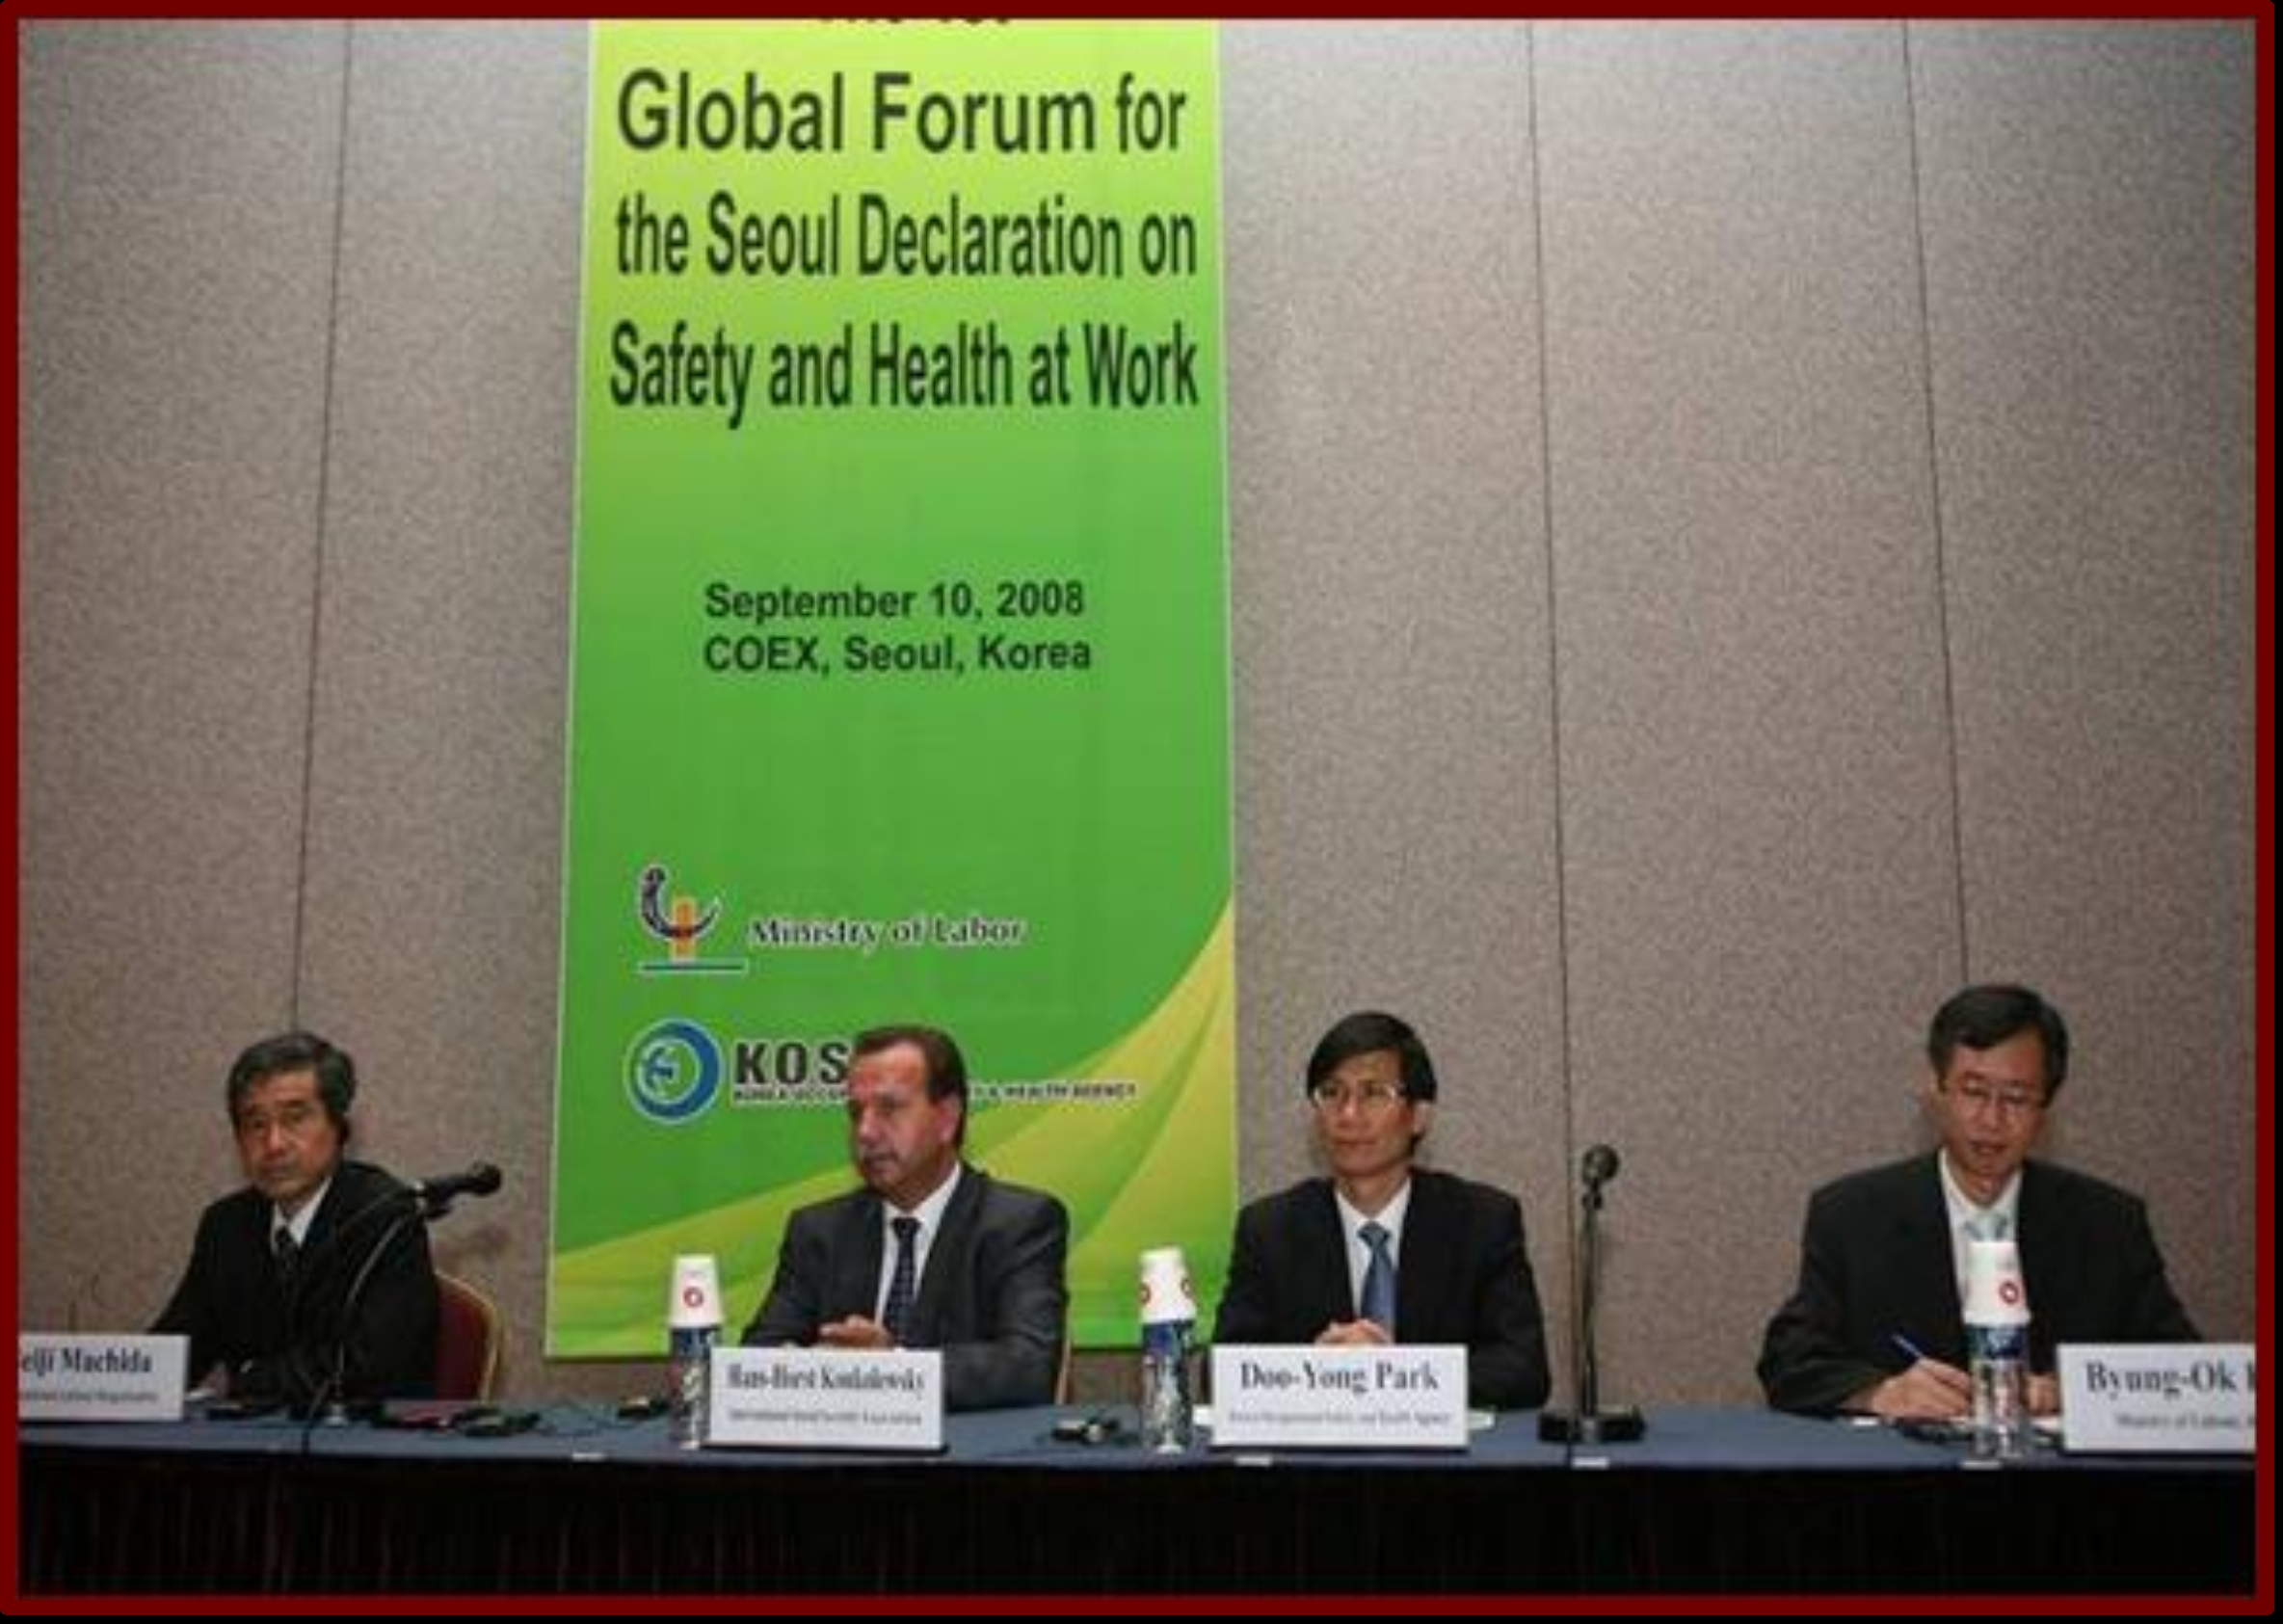 The Global Forum on the Seoul Declaration on Safety and Health at Work